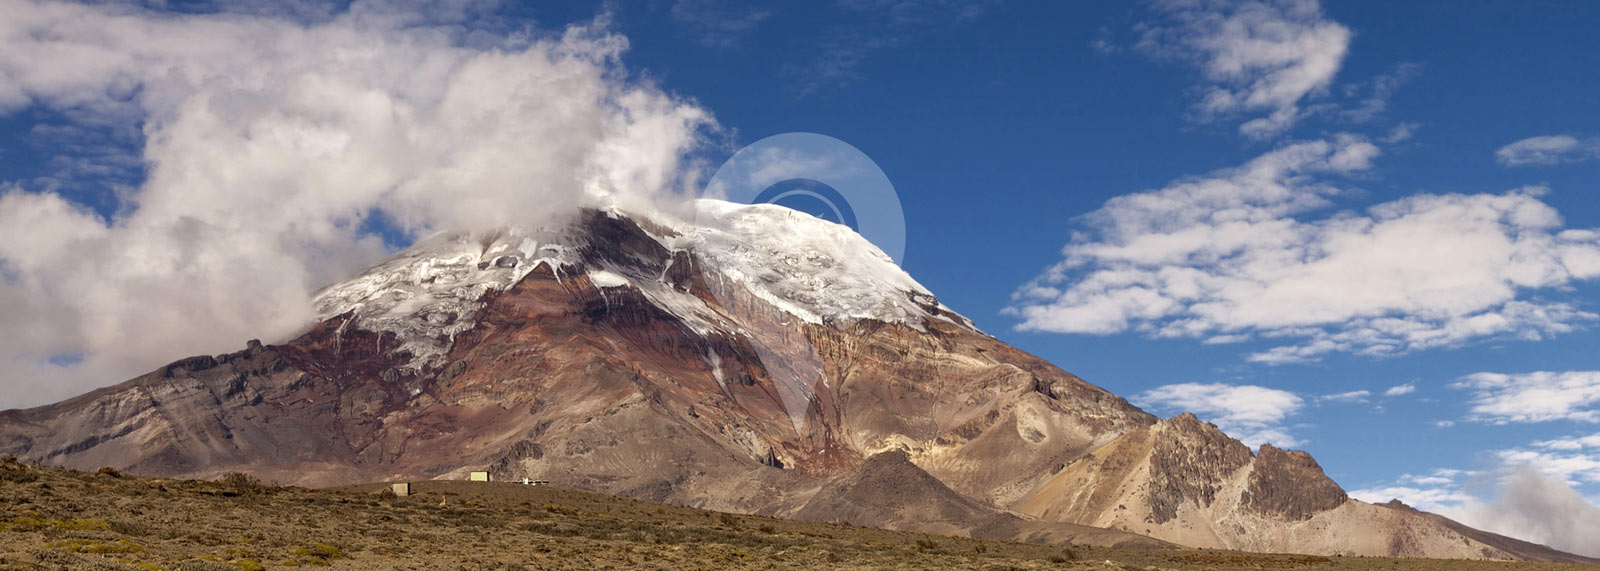 Chimborazo Summit Tour – 2 Day Program